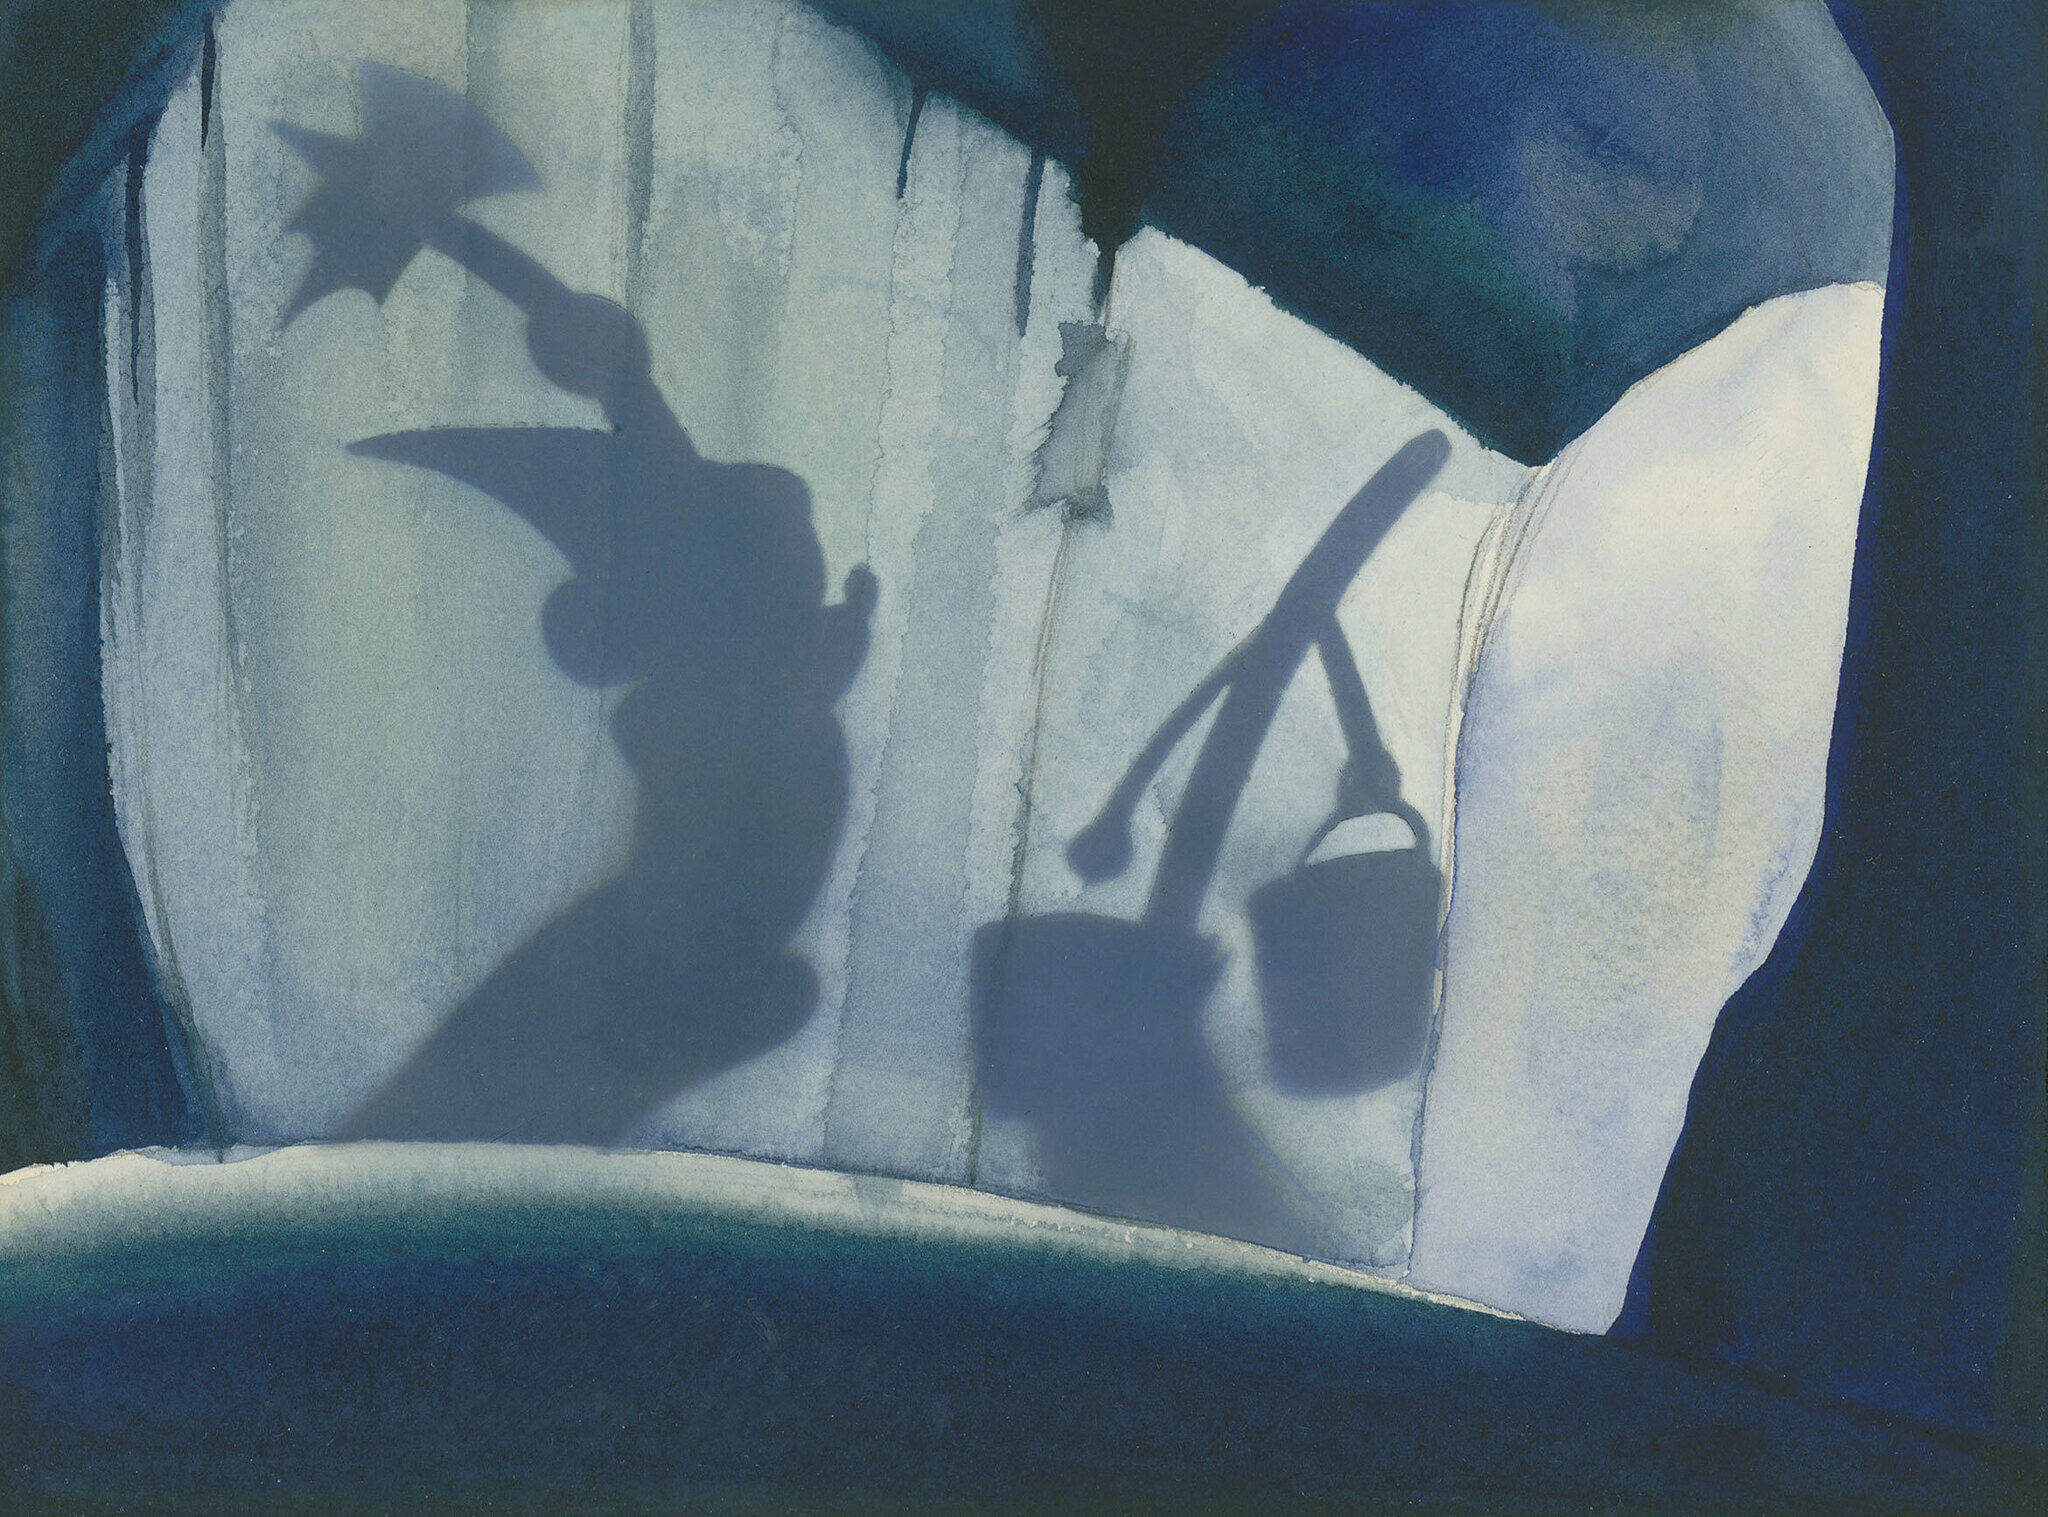 A watercolor of a sketch from the film Fantasia. Mickey Mouse and a walking broom are seen in shadow